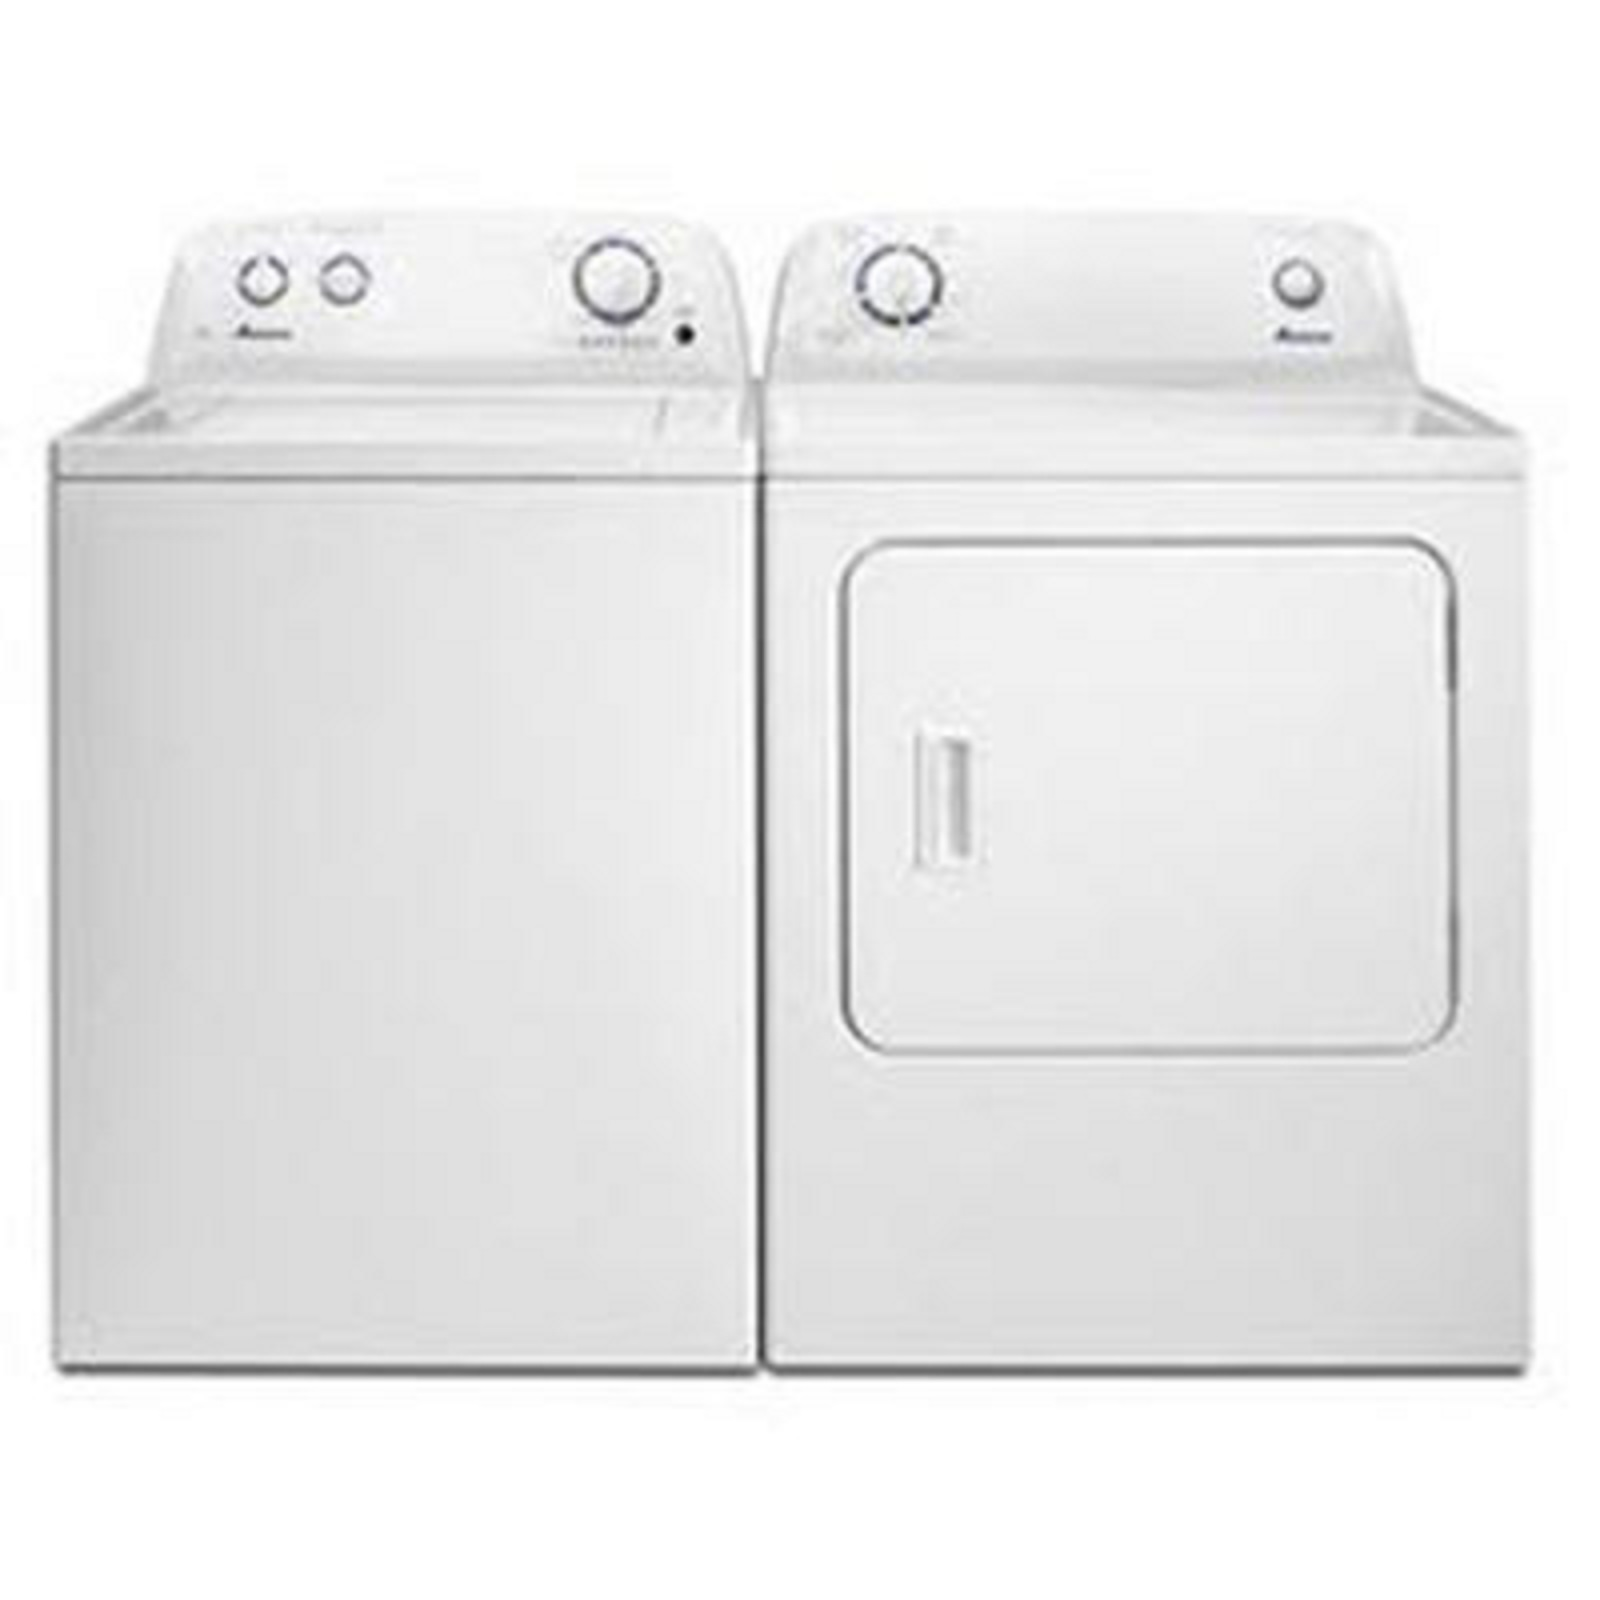 Amana Top Load Washer & Electric Dryer